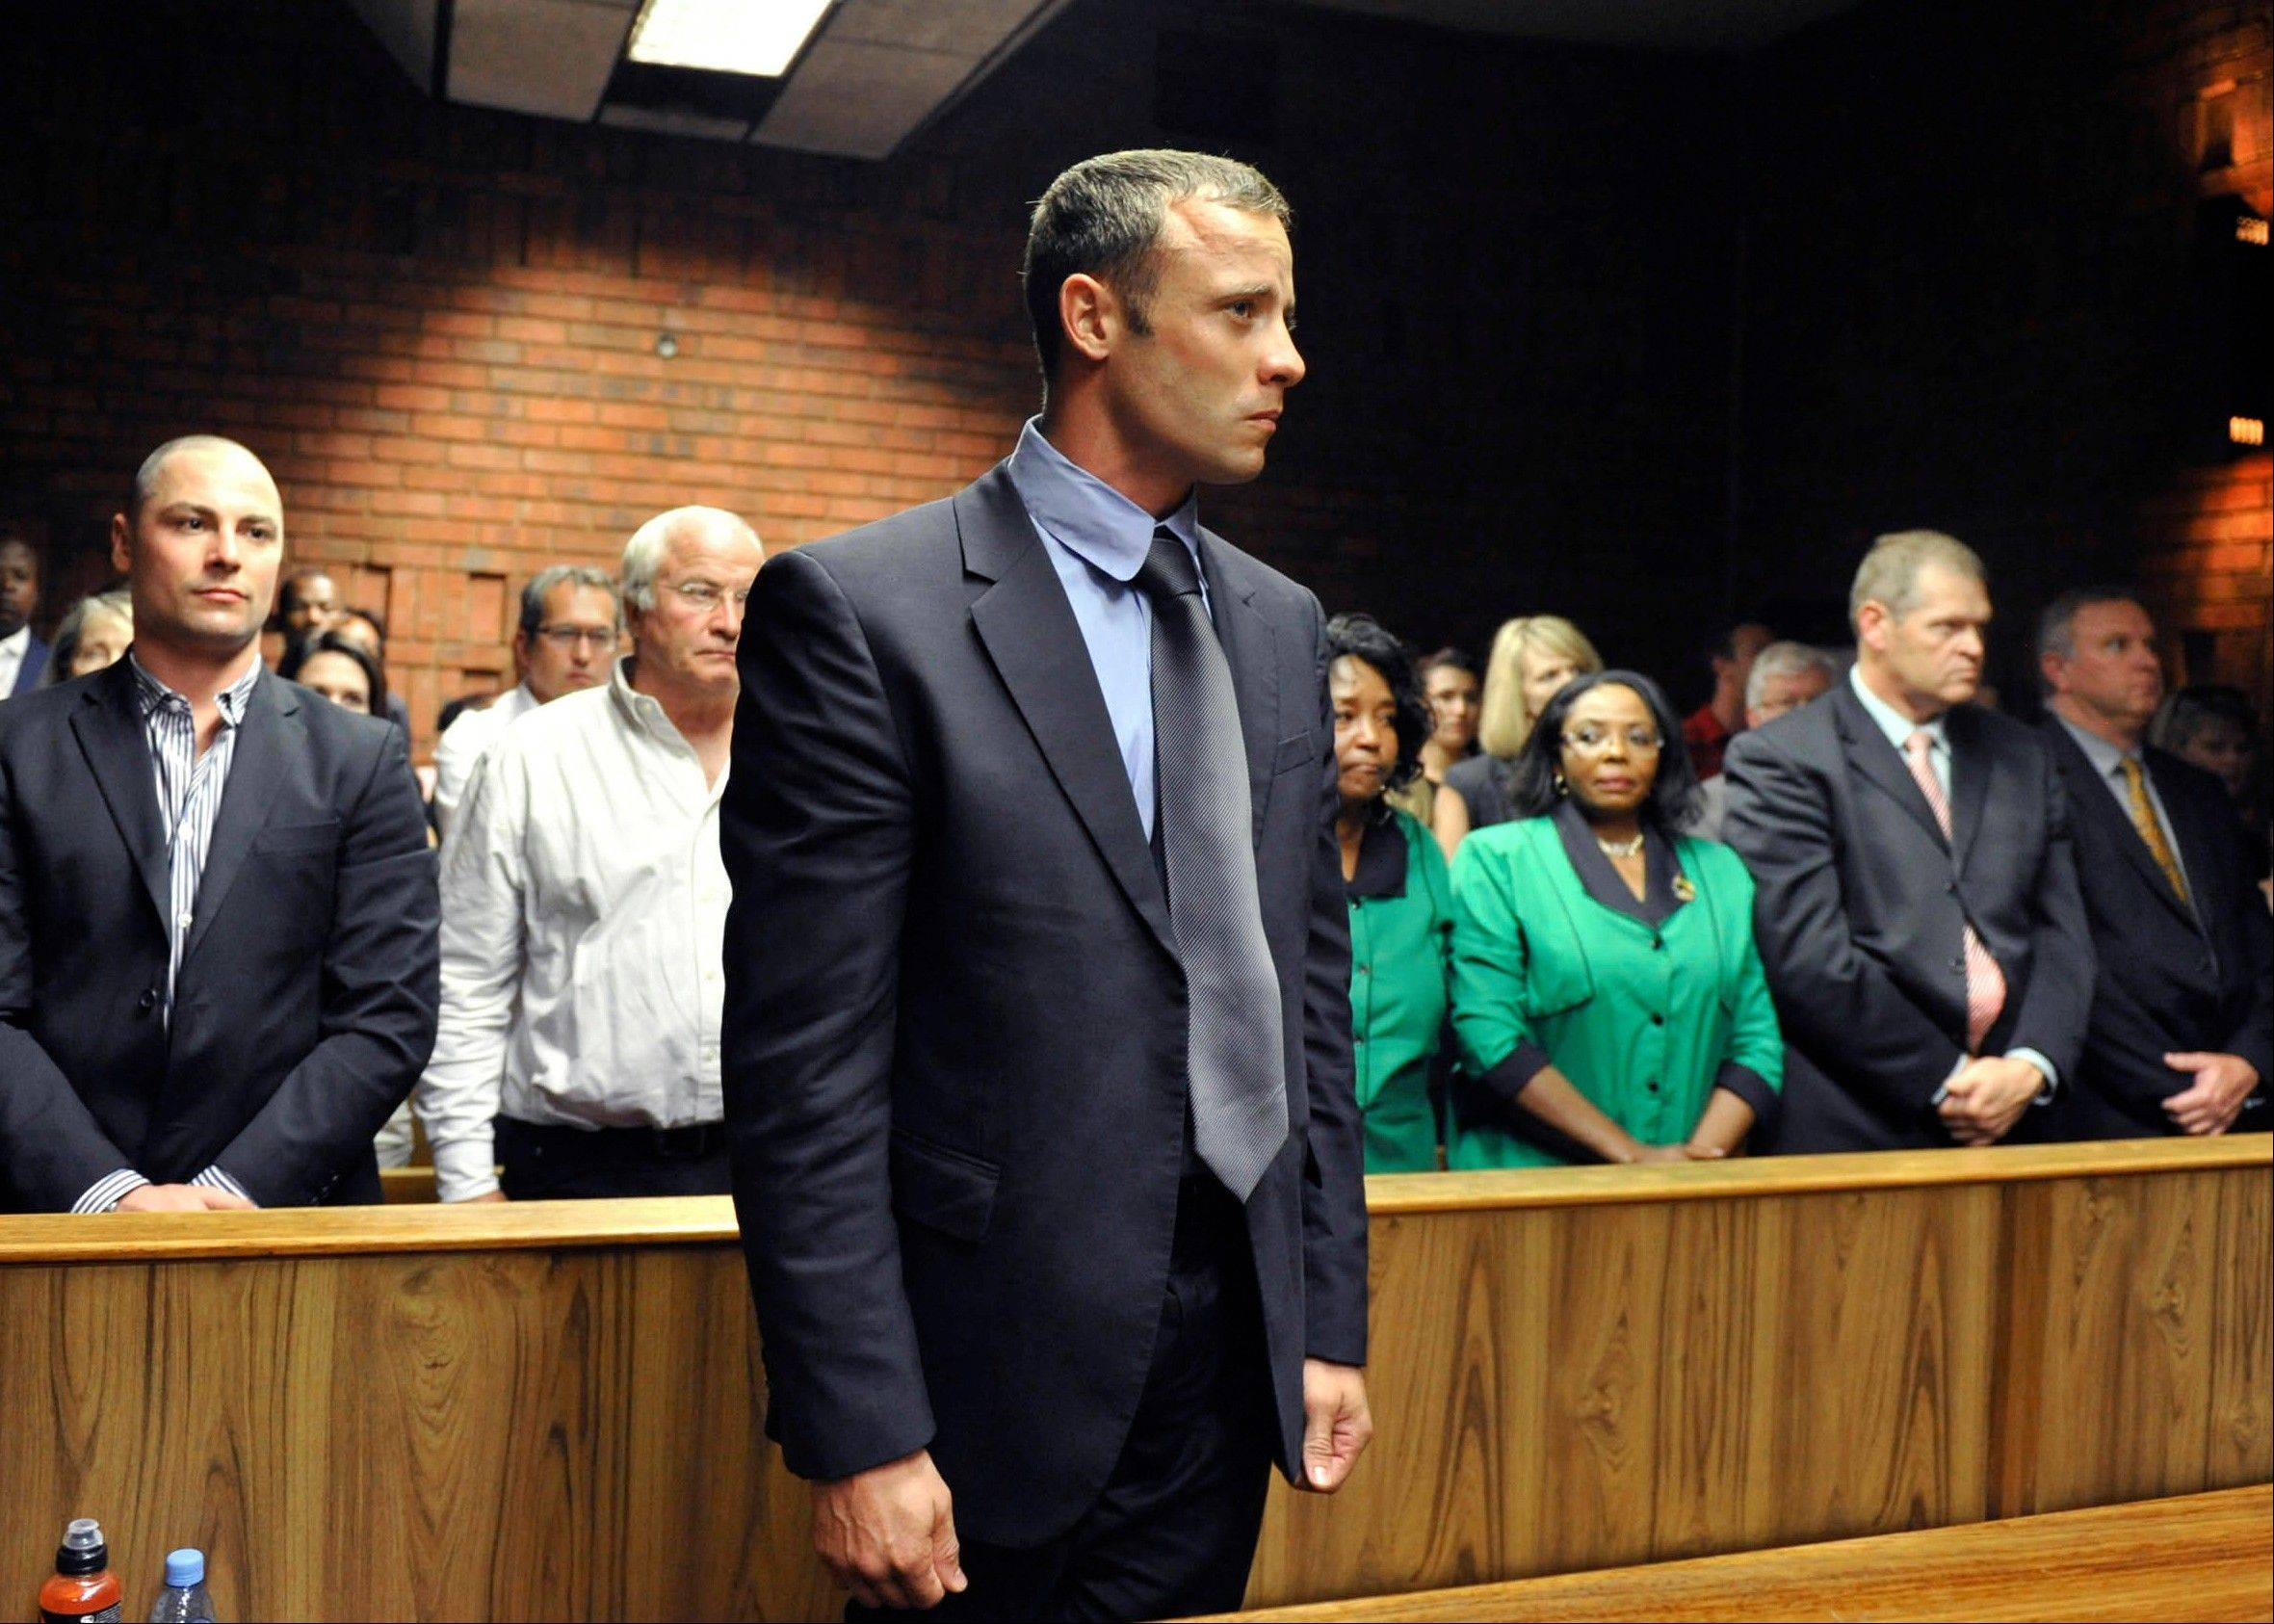 Olympian Oscar Pistorius stands following his bail hearing in Pretoria, South Africa, Tuesday. Pistorius fired into the door of a small bathroom where his girlfriend was cowering after a shouting match on Valentine's Day, hitting her three times, a South African prosecutor said Tuesday as he charged the sports icon with premeditated murder.